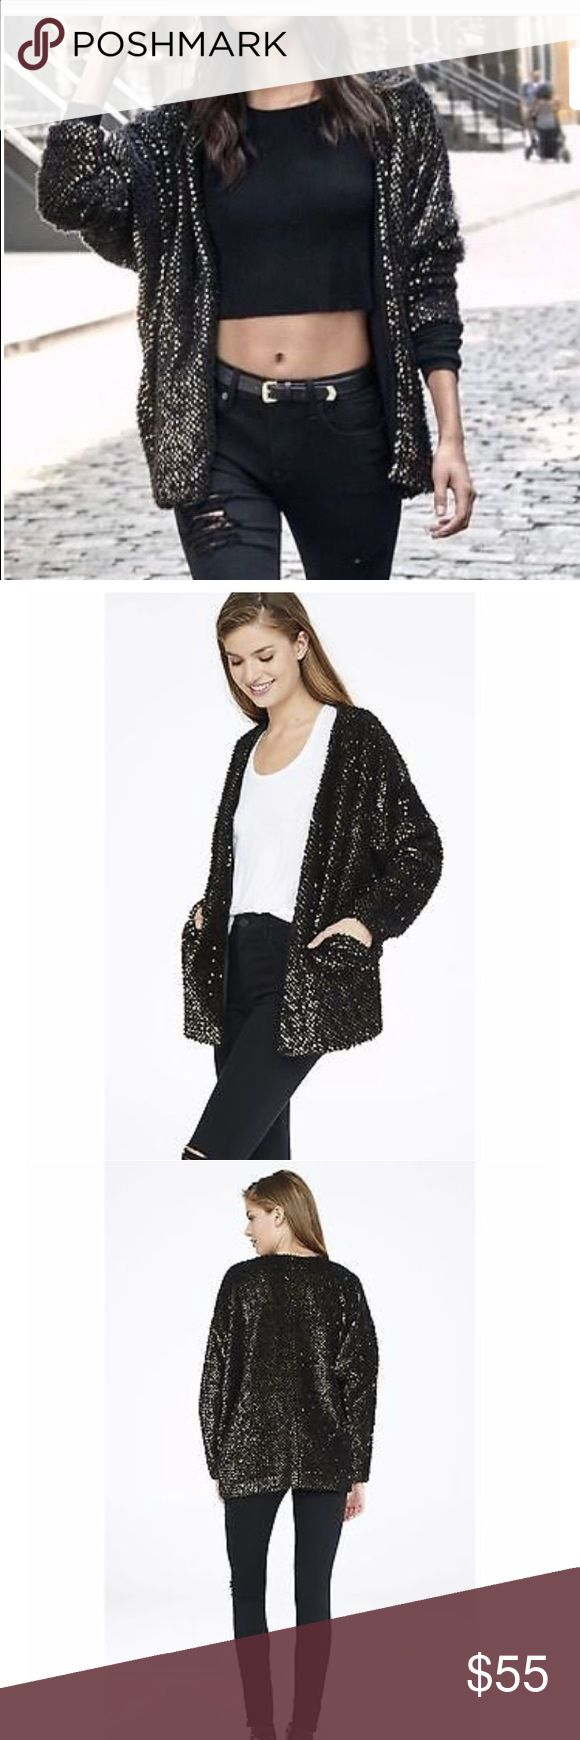 Best 25  Sequin cardigan ideas on Pinterest | Sequin blazer, Gold ...